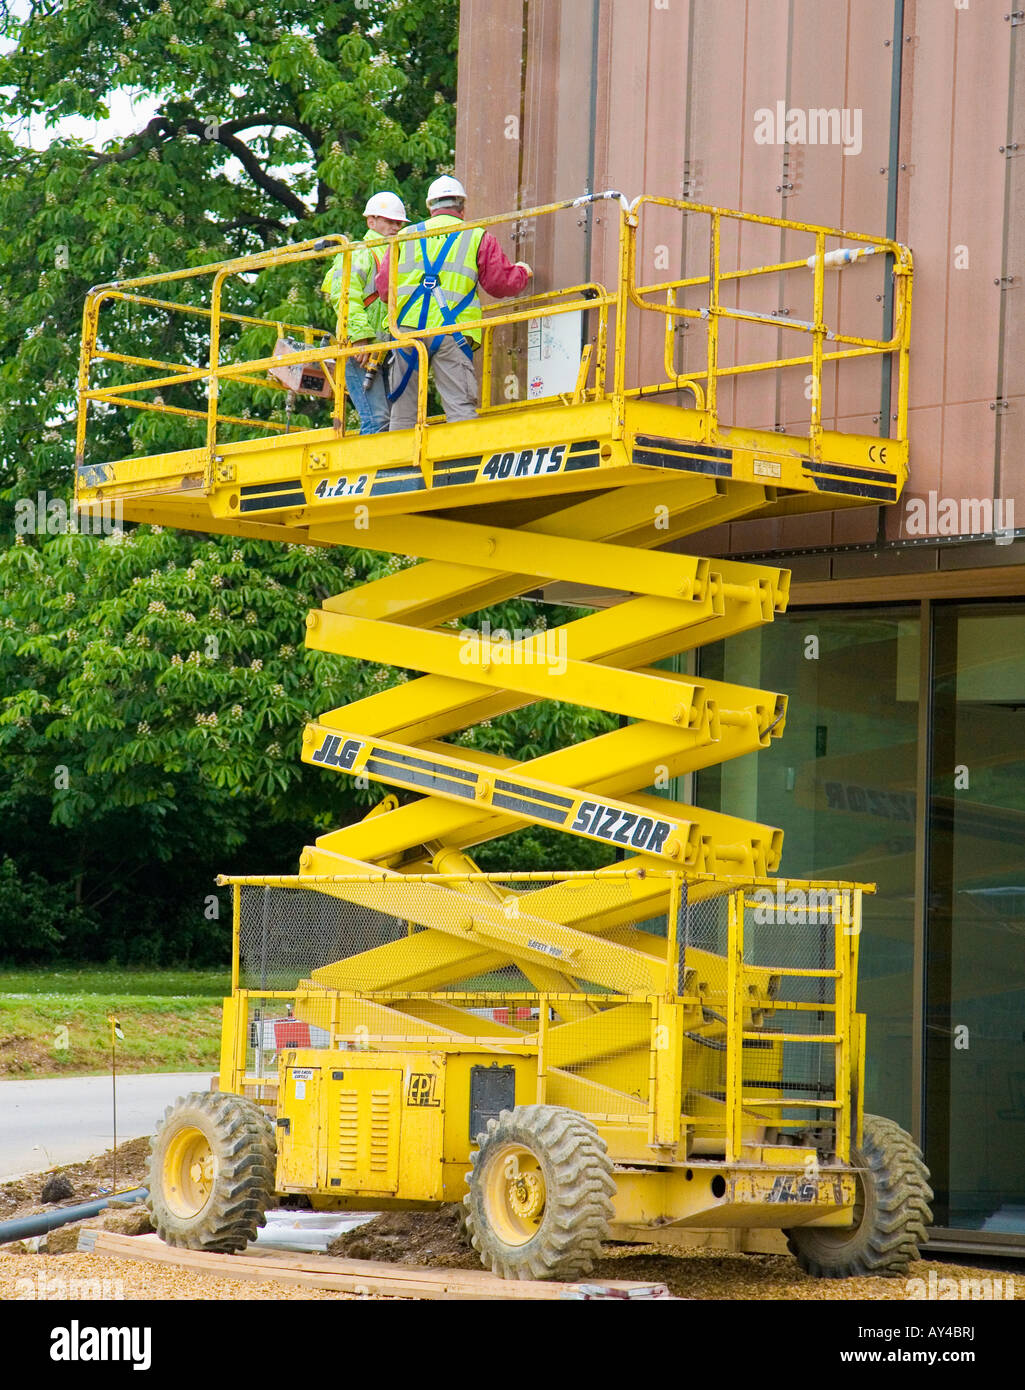 Scissor lift on building site showing workers with safety equipment - Stock Image